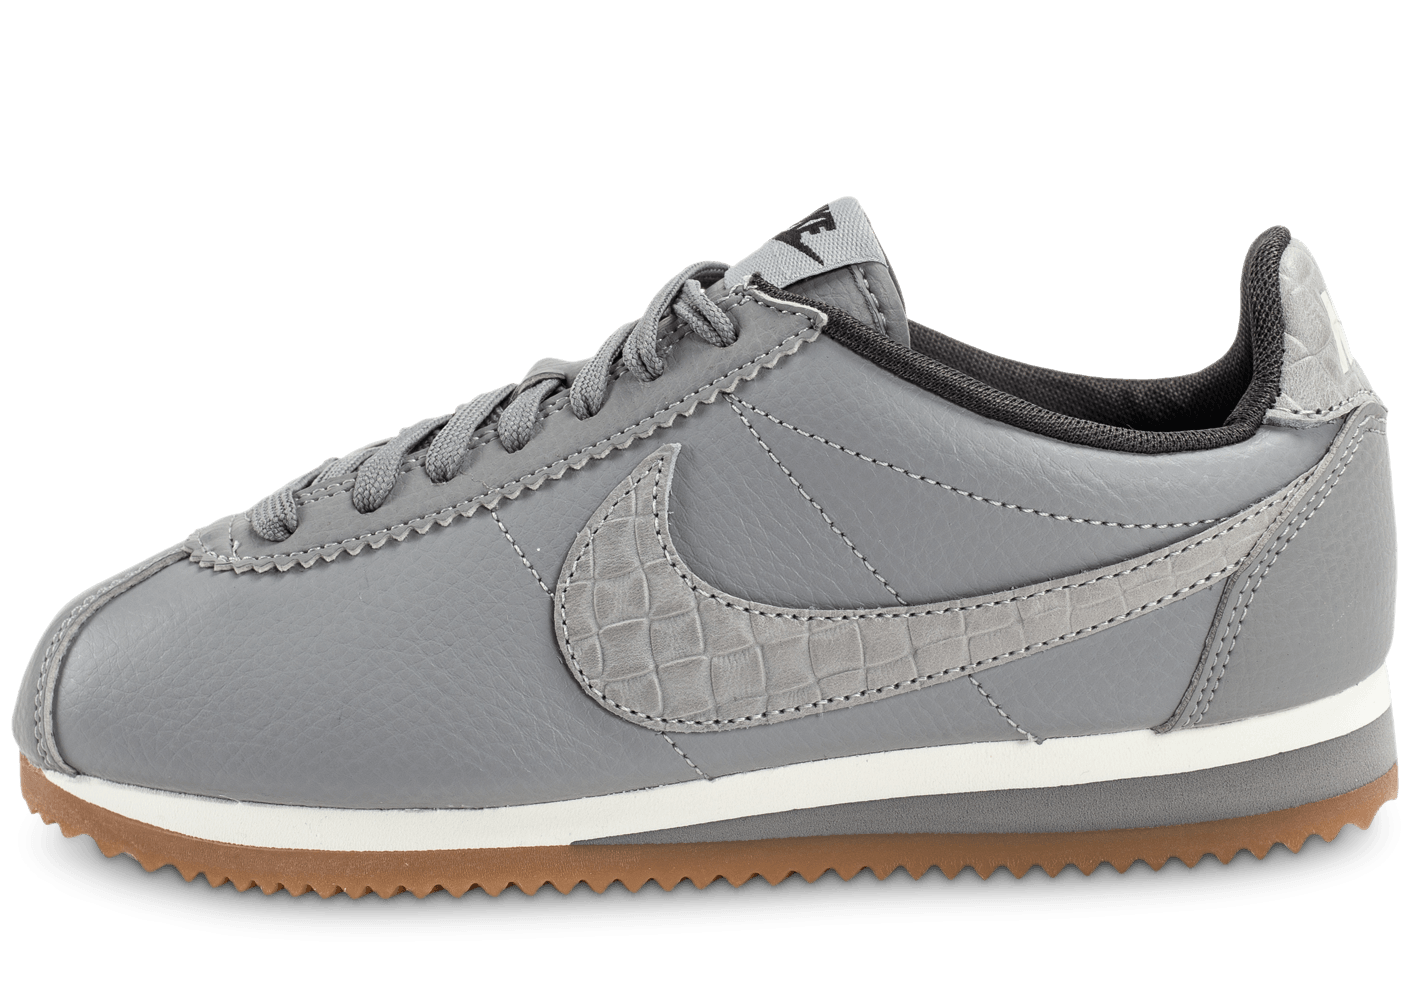 nike classic cortez leather lux grise chaussures pour lyc ens chausport. Black Bedroom Furniture Sets. Home Design Ideas